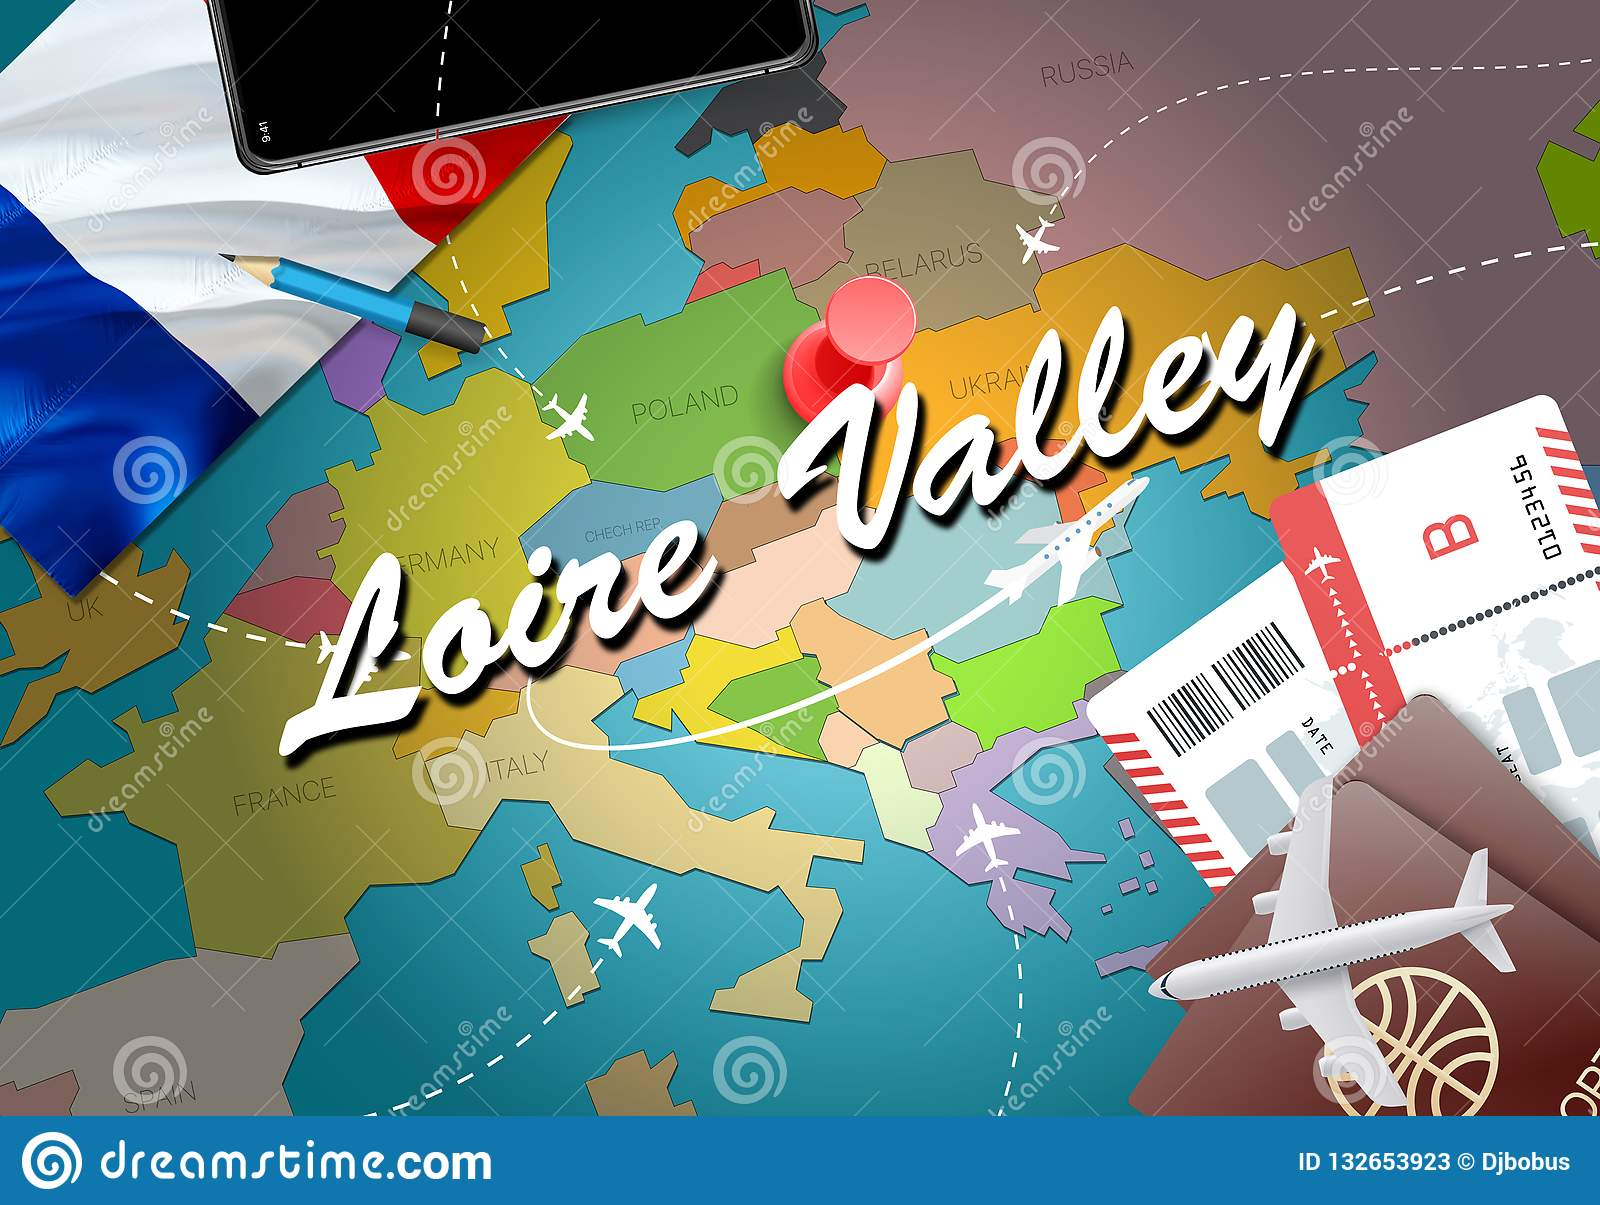 City Map Of France.Loire Valley City Travel And Tourism Destination Concept France